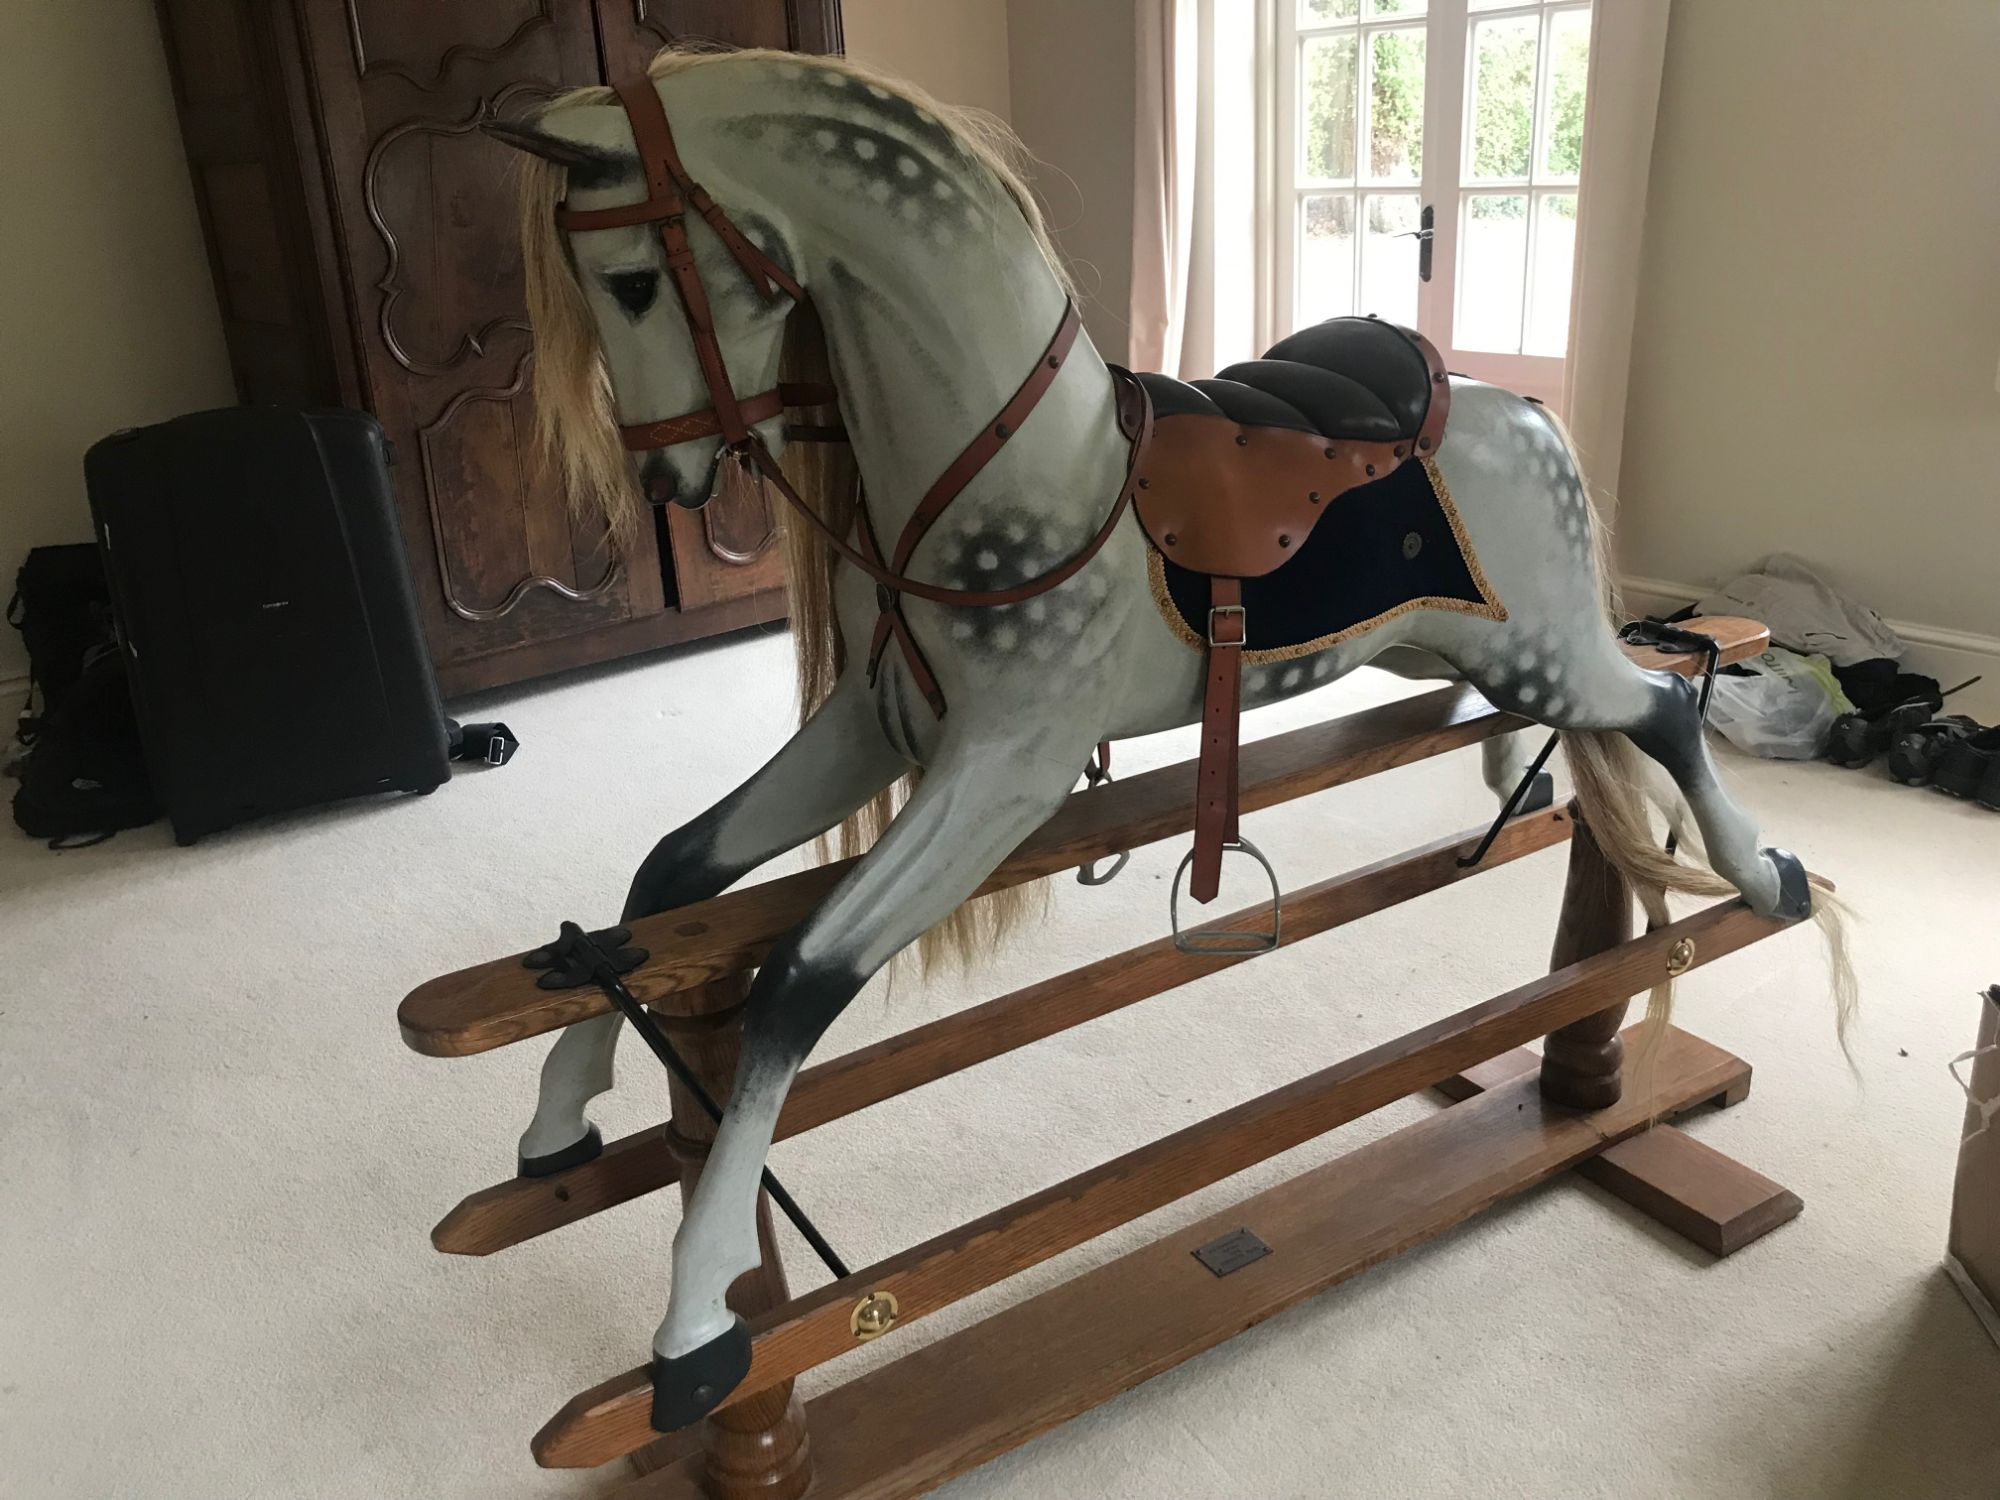 Legends Rocking Horse for sale - Dapple grey